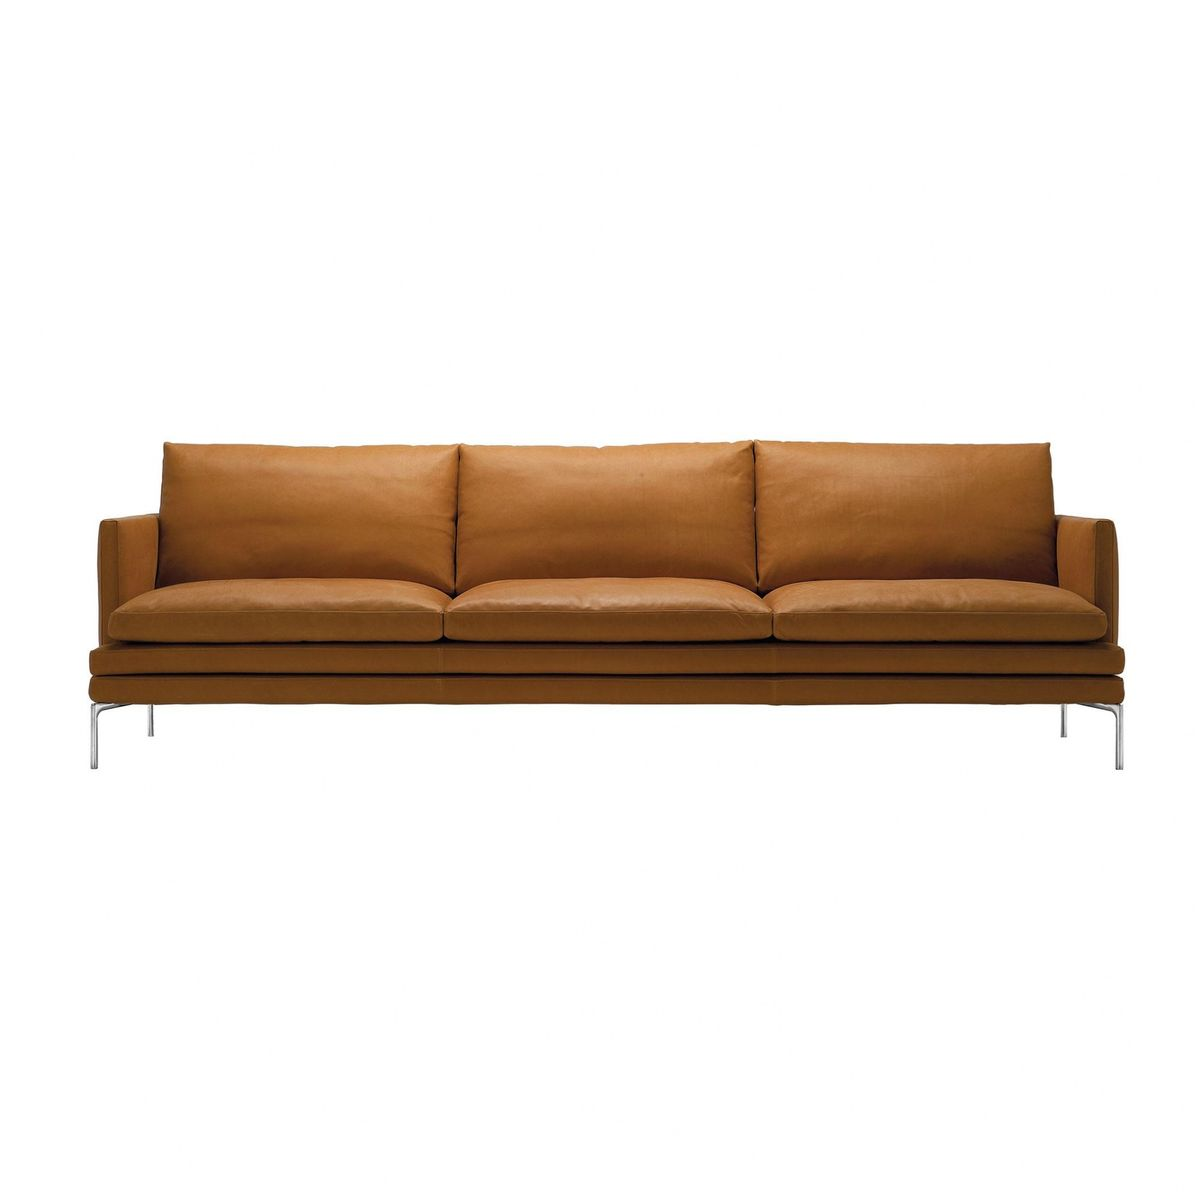 William 3 sitzer sofa zanotta for Zanotta divani